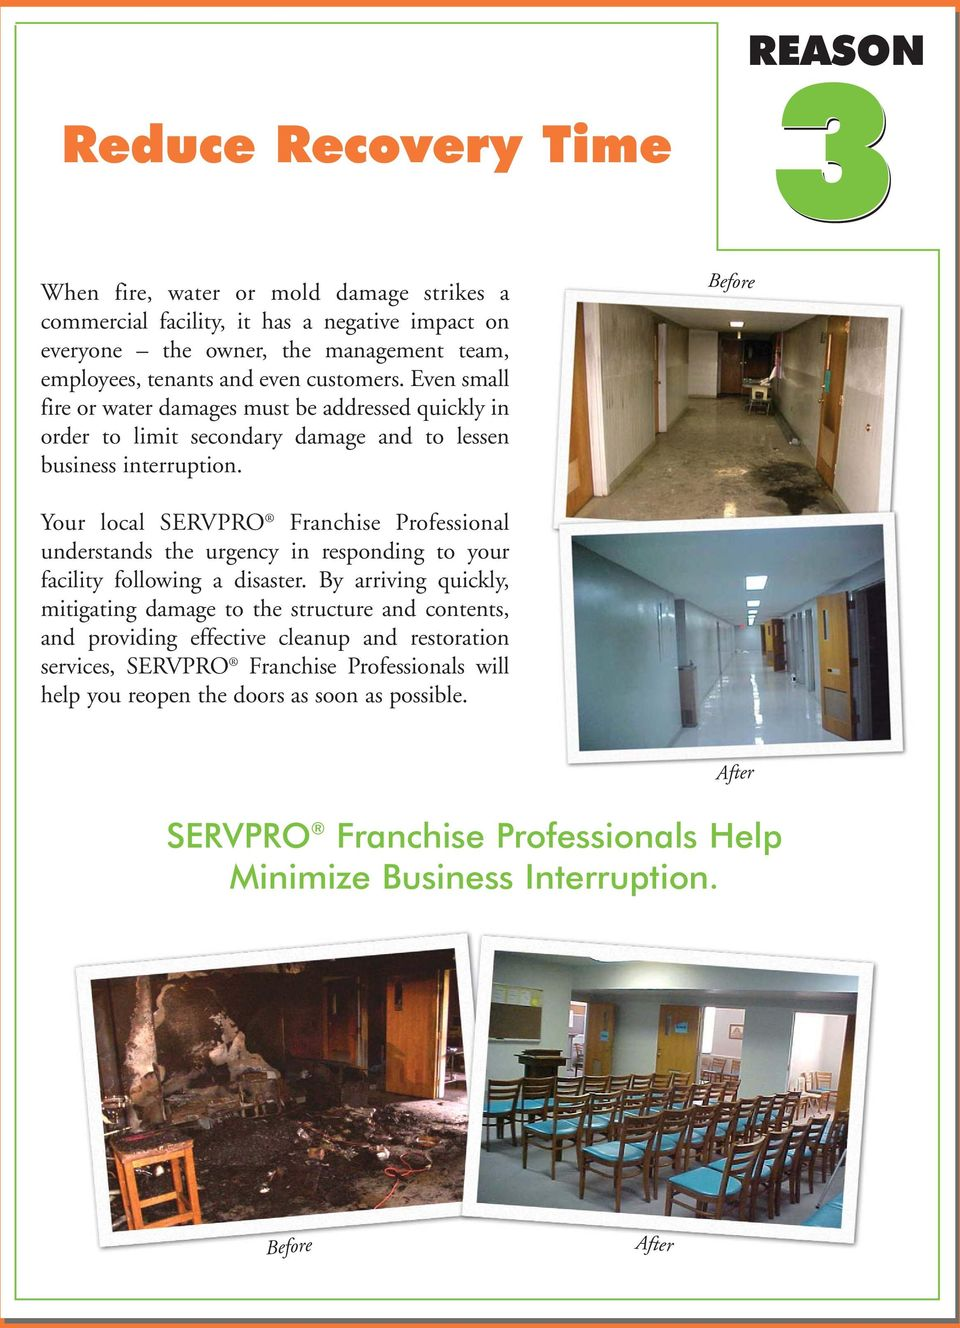 Before Your local SERVPRO Franchise Professional understands the urgency in responding to your facility following a disaster.